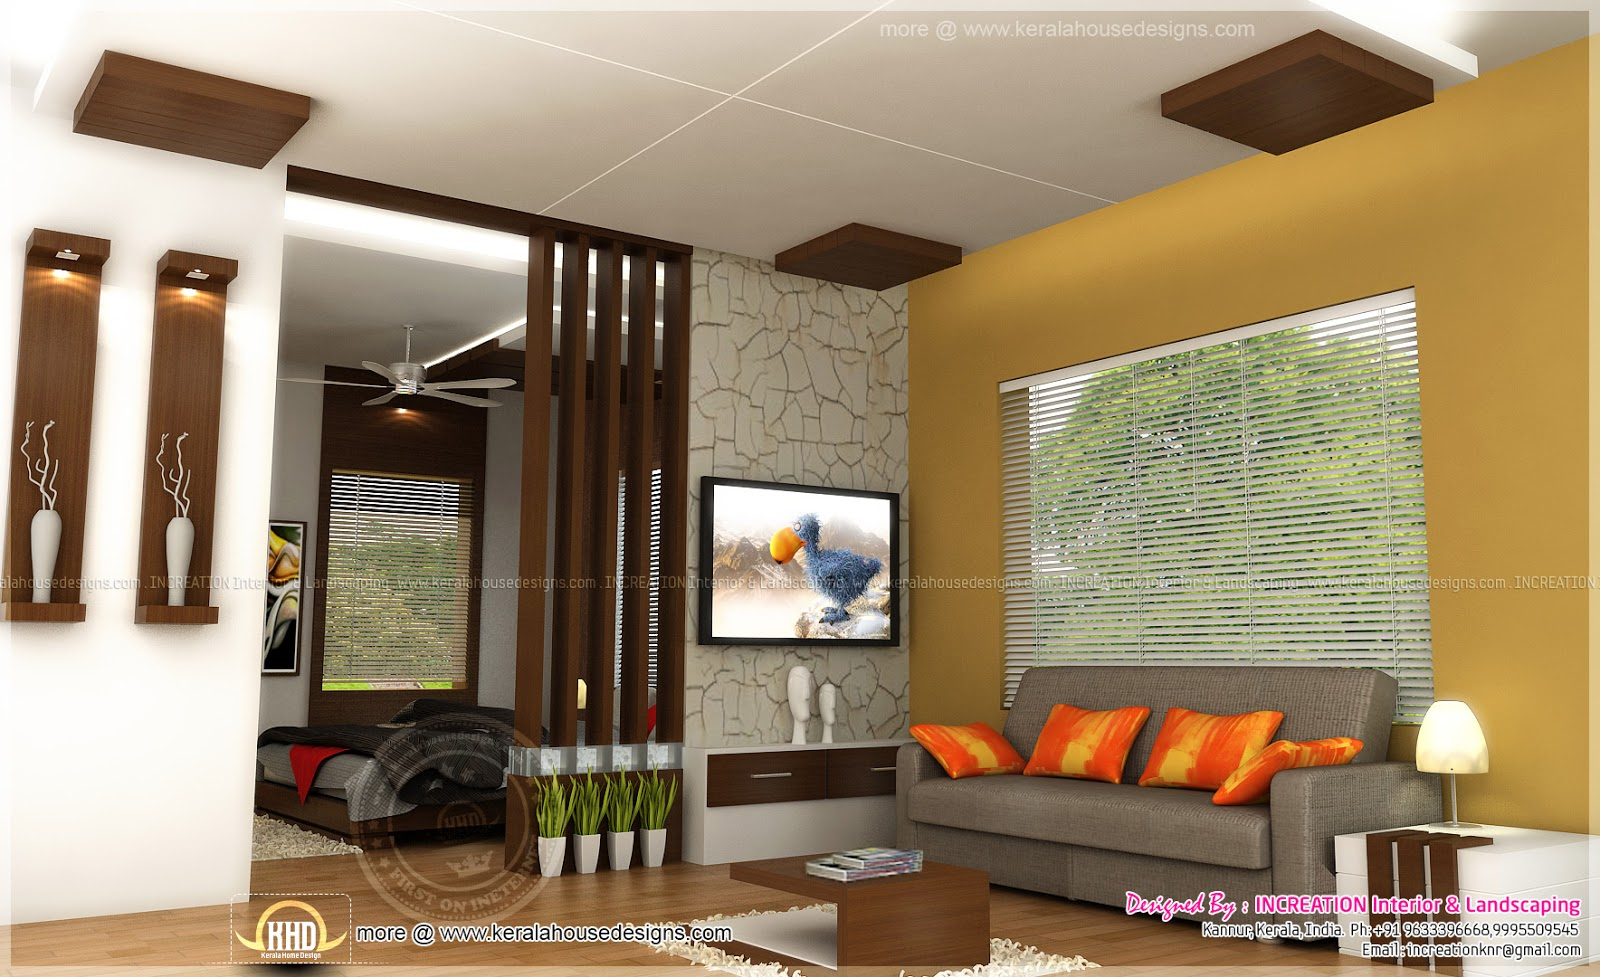 Interior designs from Kannur